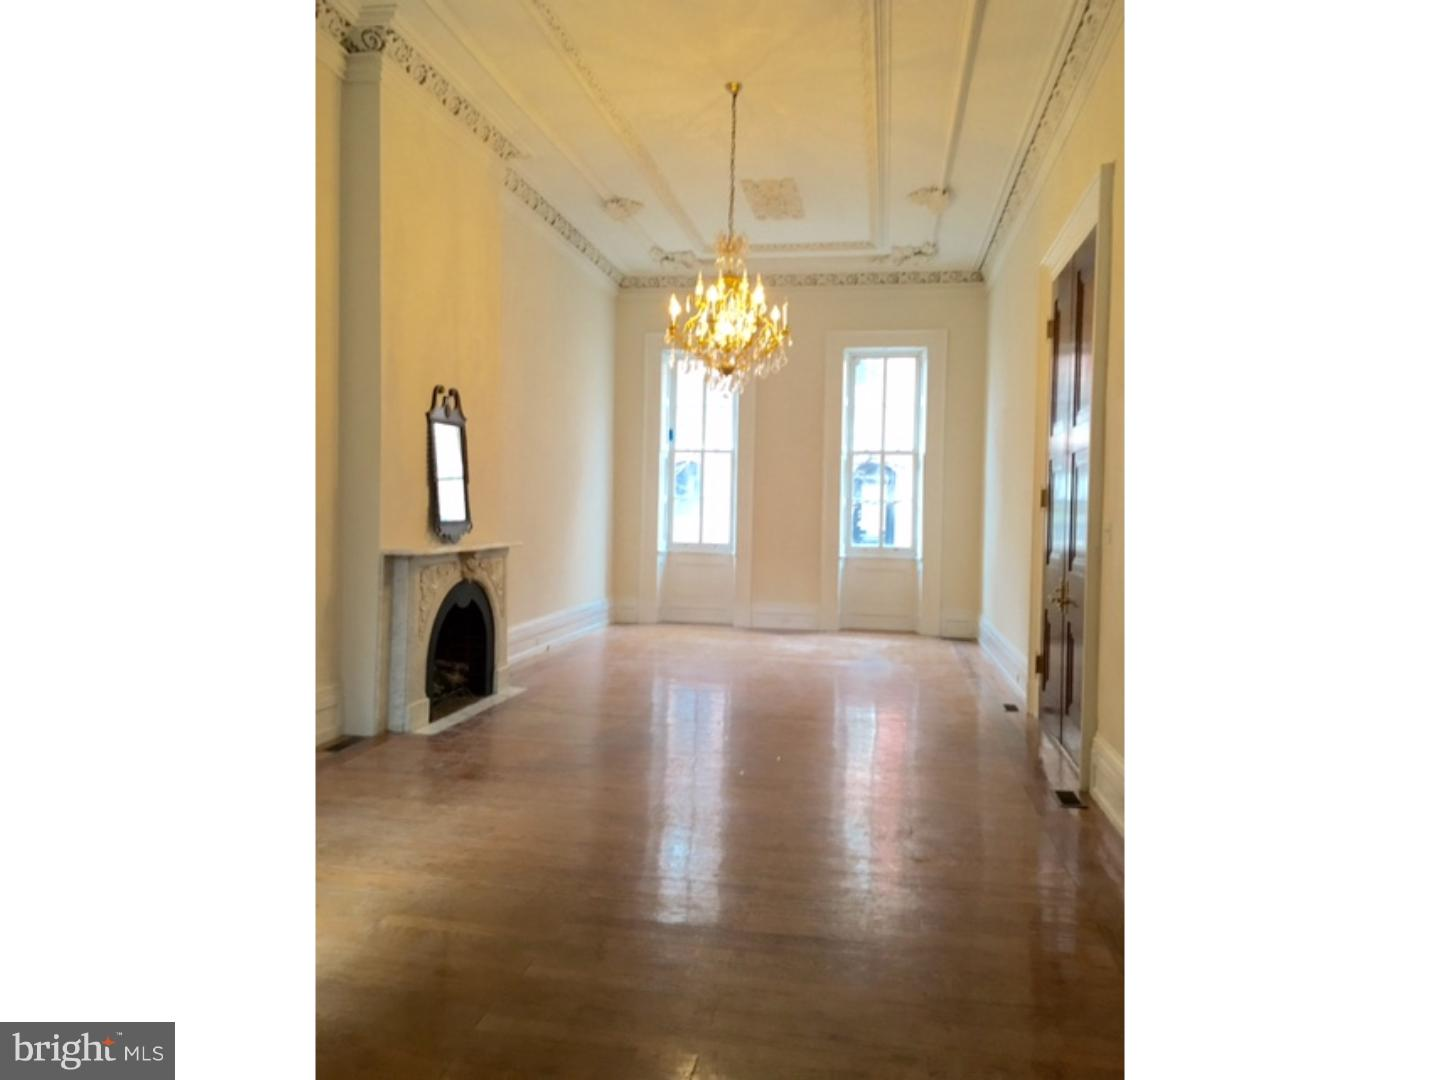 Are you looking to get to Jefferson, or Pennsylvania Hospital or CHOP in 10 minutes or LESS? This ENORMOUS 2/3 bedroom 3000+ sq ft residence is a MUST SEE!! In this AMAZING BROWNSTONE!! As you enter through french DOUBLE DOORS, you will find, 15 ft ceilings in the living room, heated floors in the just renovated eat in kitchen and full bath, side garden, and 1st bedroom w/ a large closet. An elegant set of stairs leads you your second living space/ den and Master suite w/ marble bath and ENORMOUS. Private roof deck!!! The lower level of this apartment, also has heated floors,  and a full bath as well! 2 car parking available